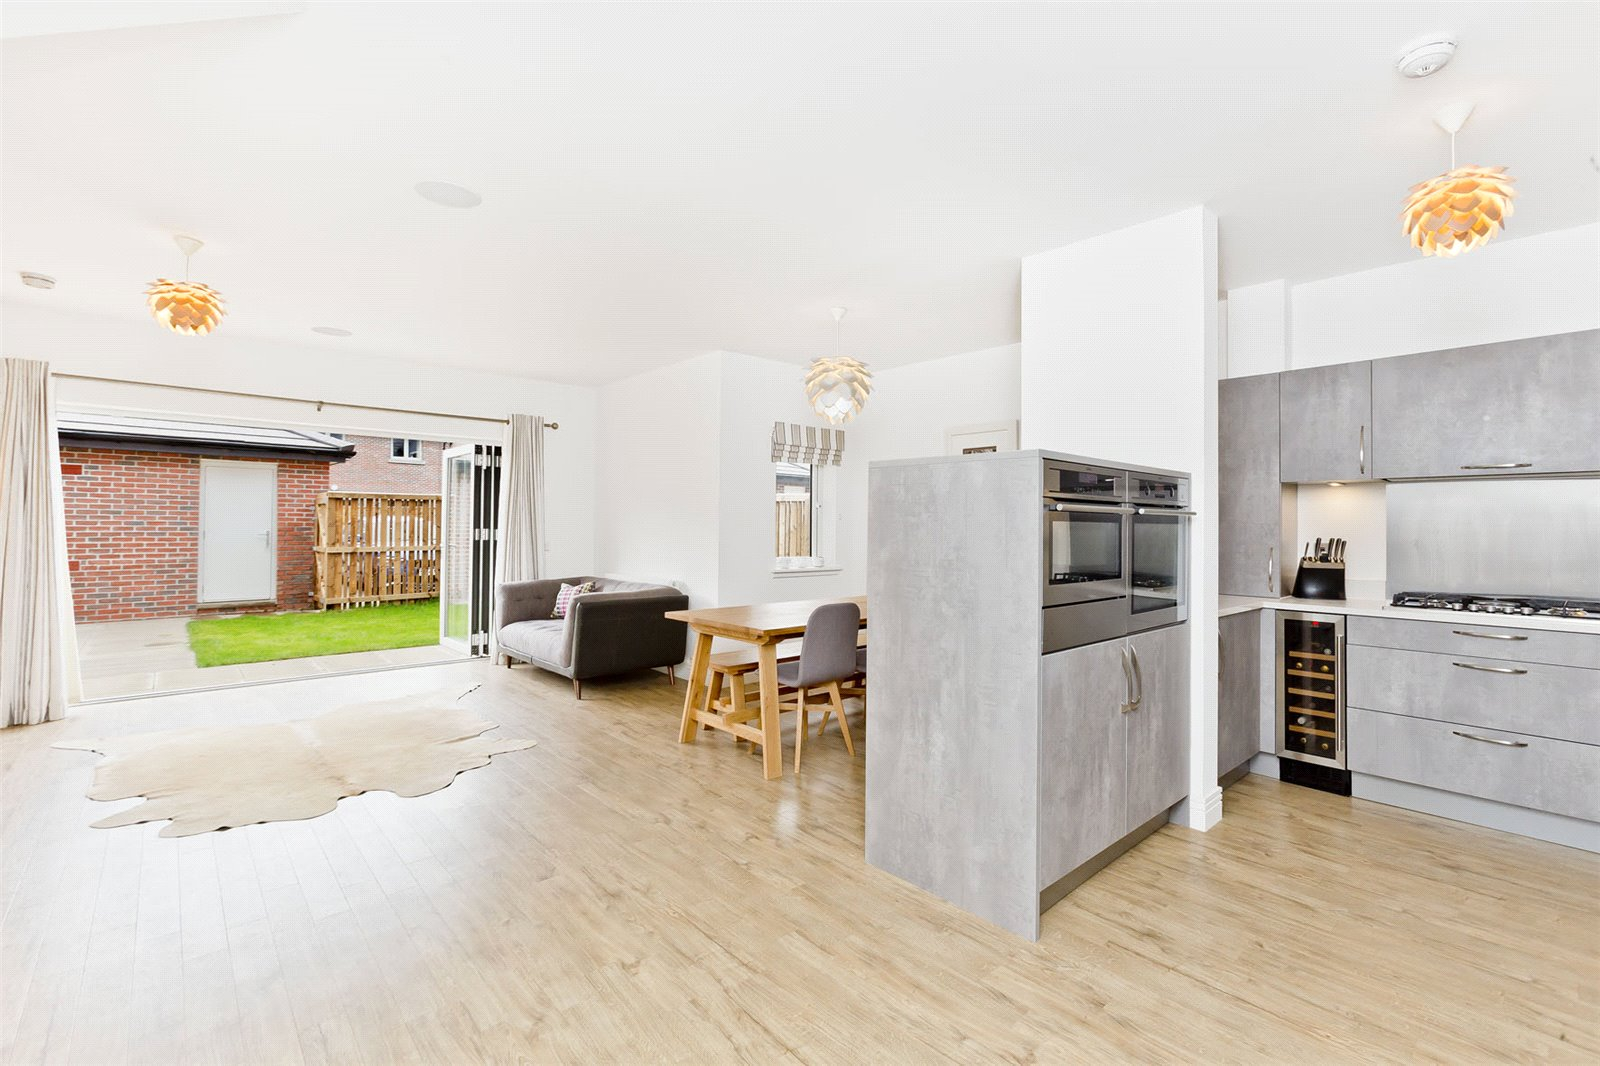 Edinburgh Property of the Week: 5 Wintour Lane